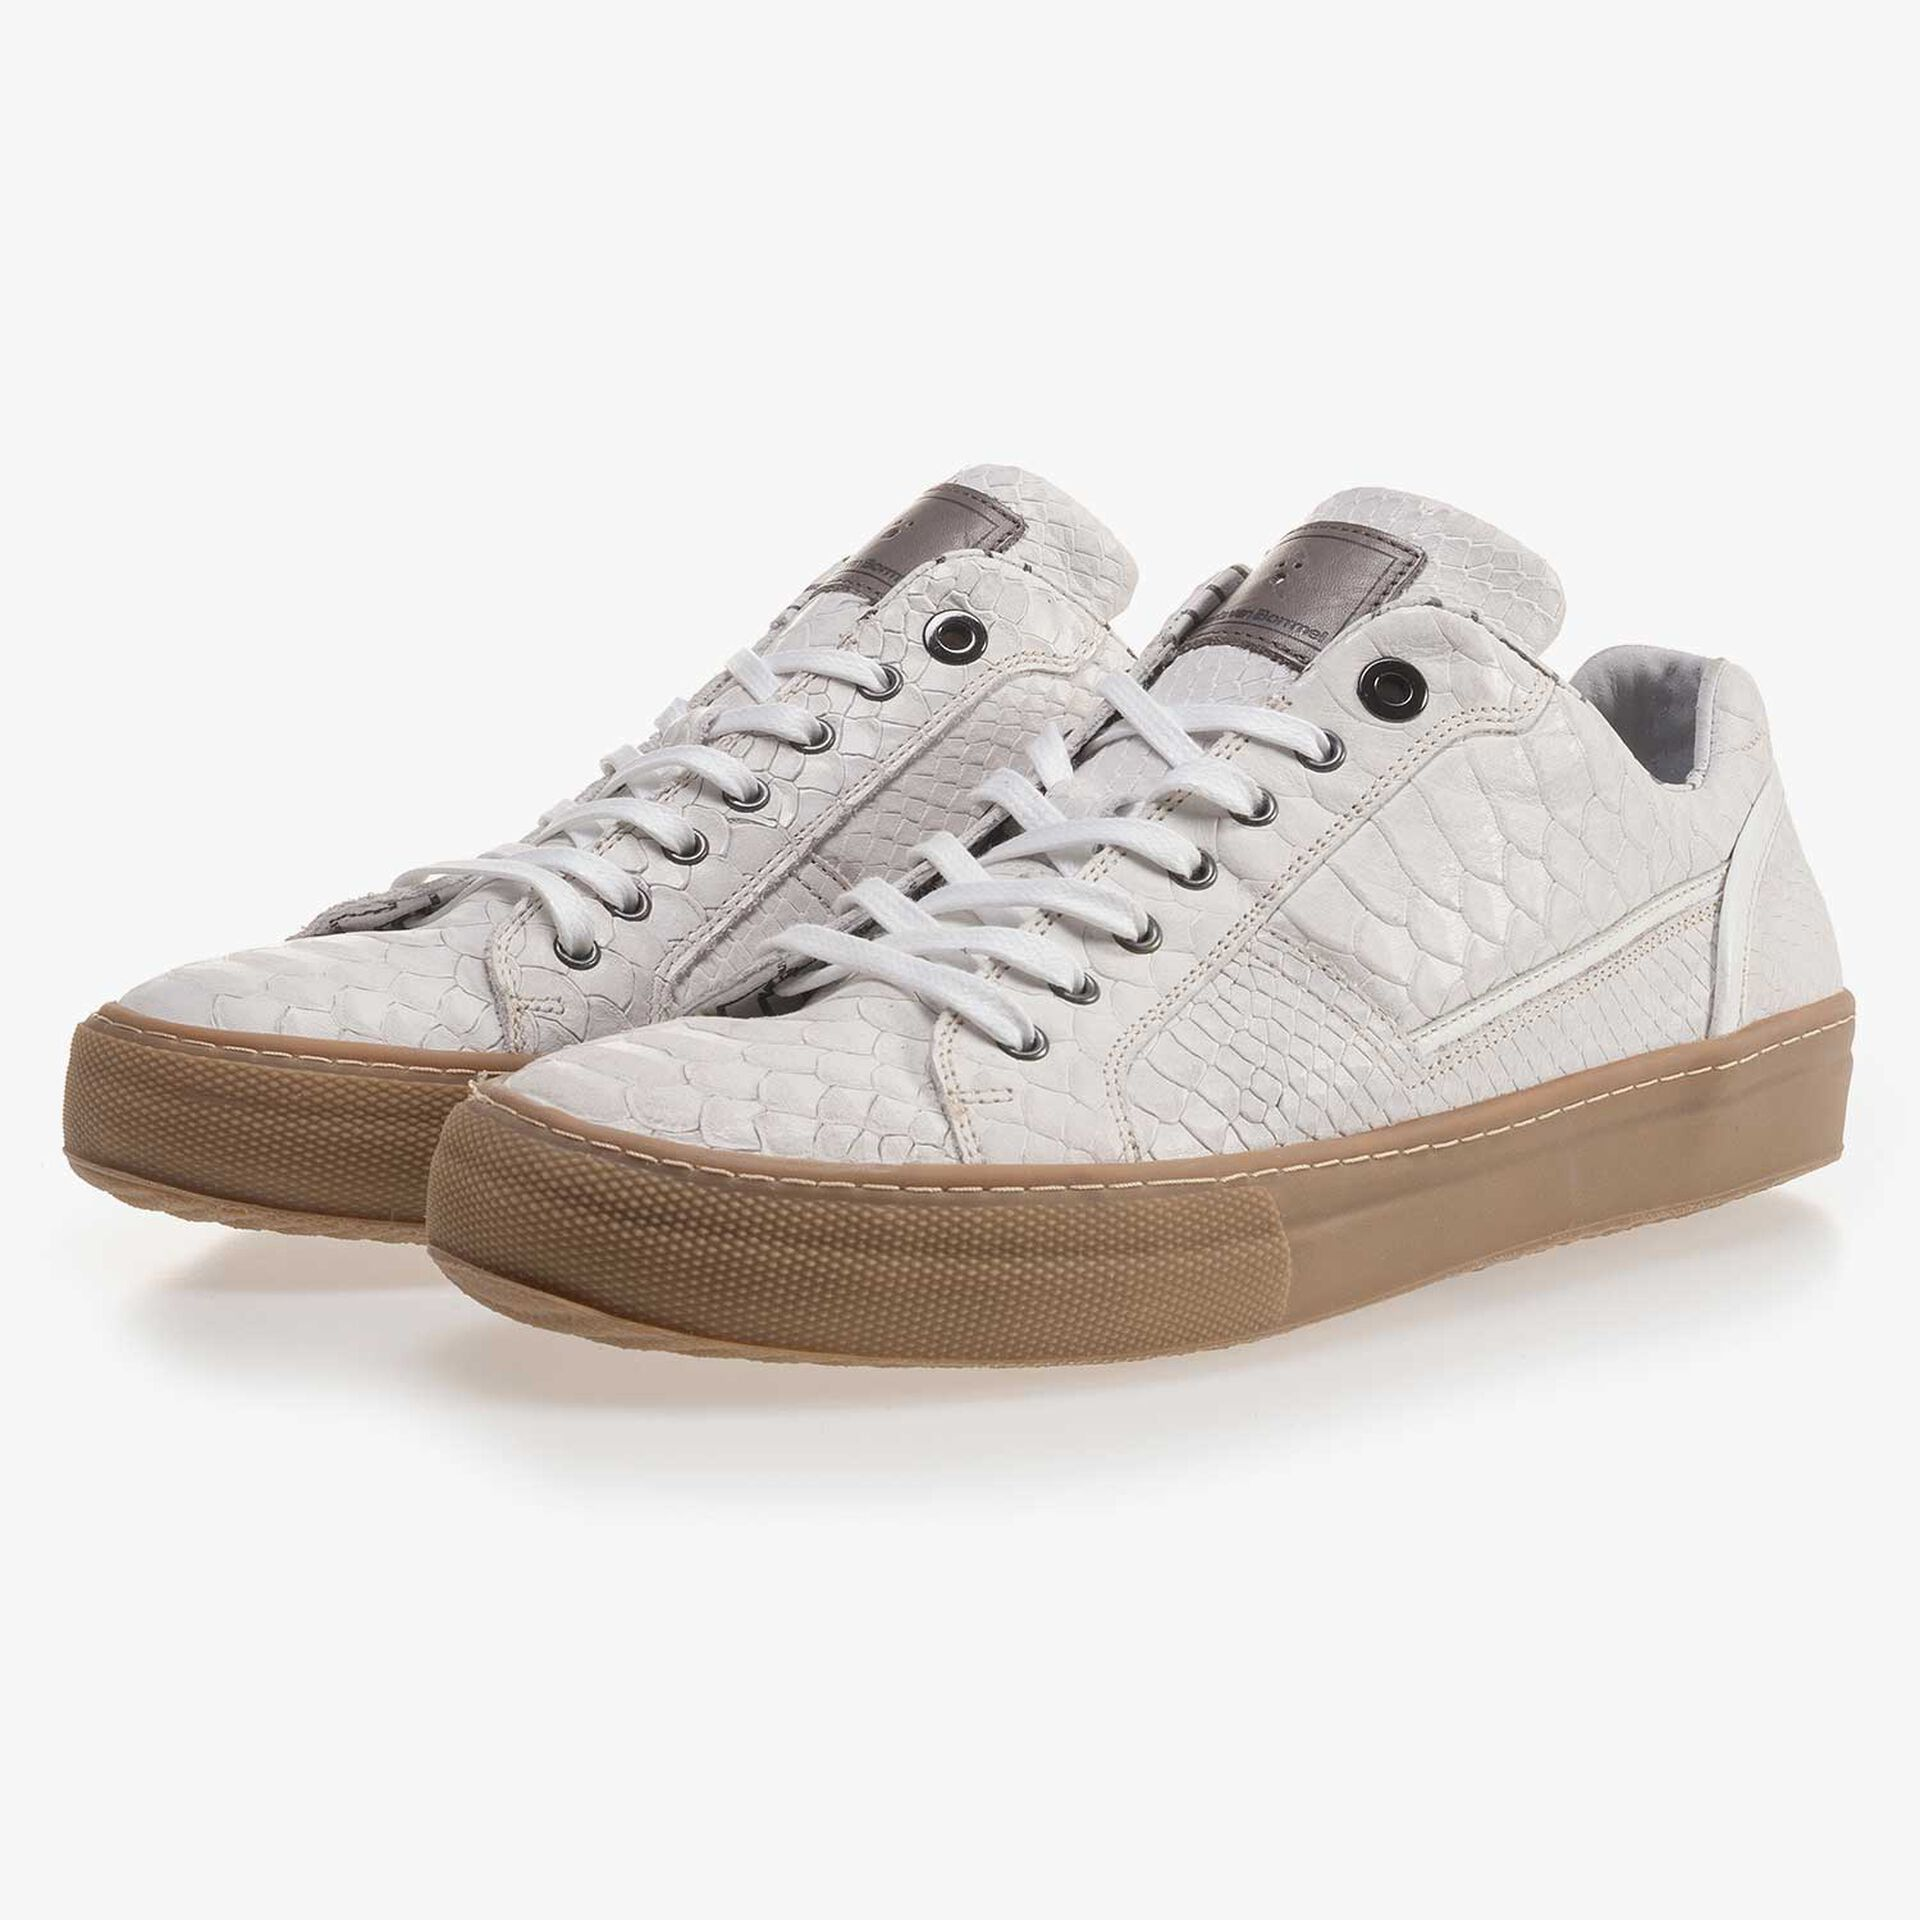 White leather sneaker with a snake print